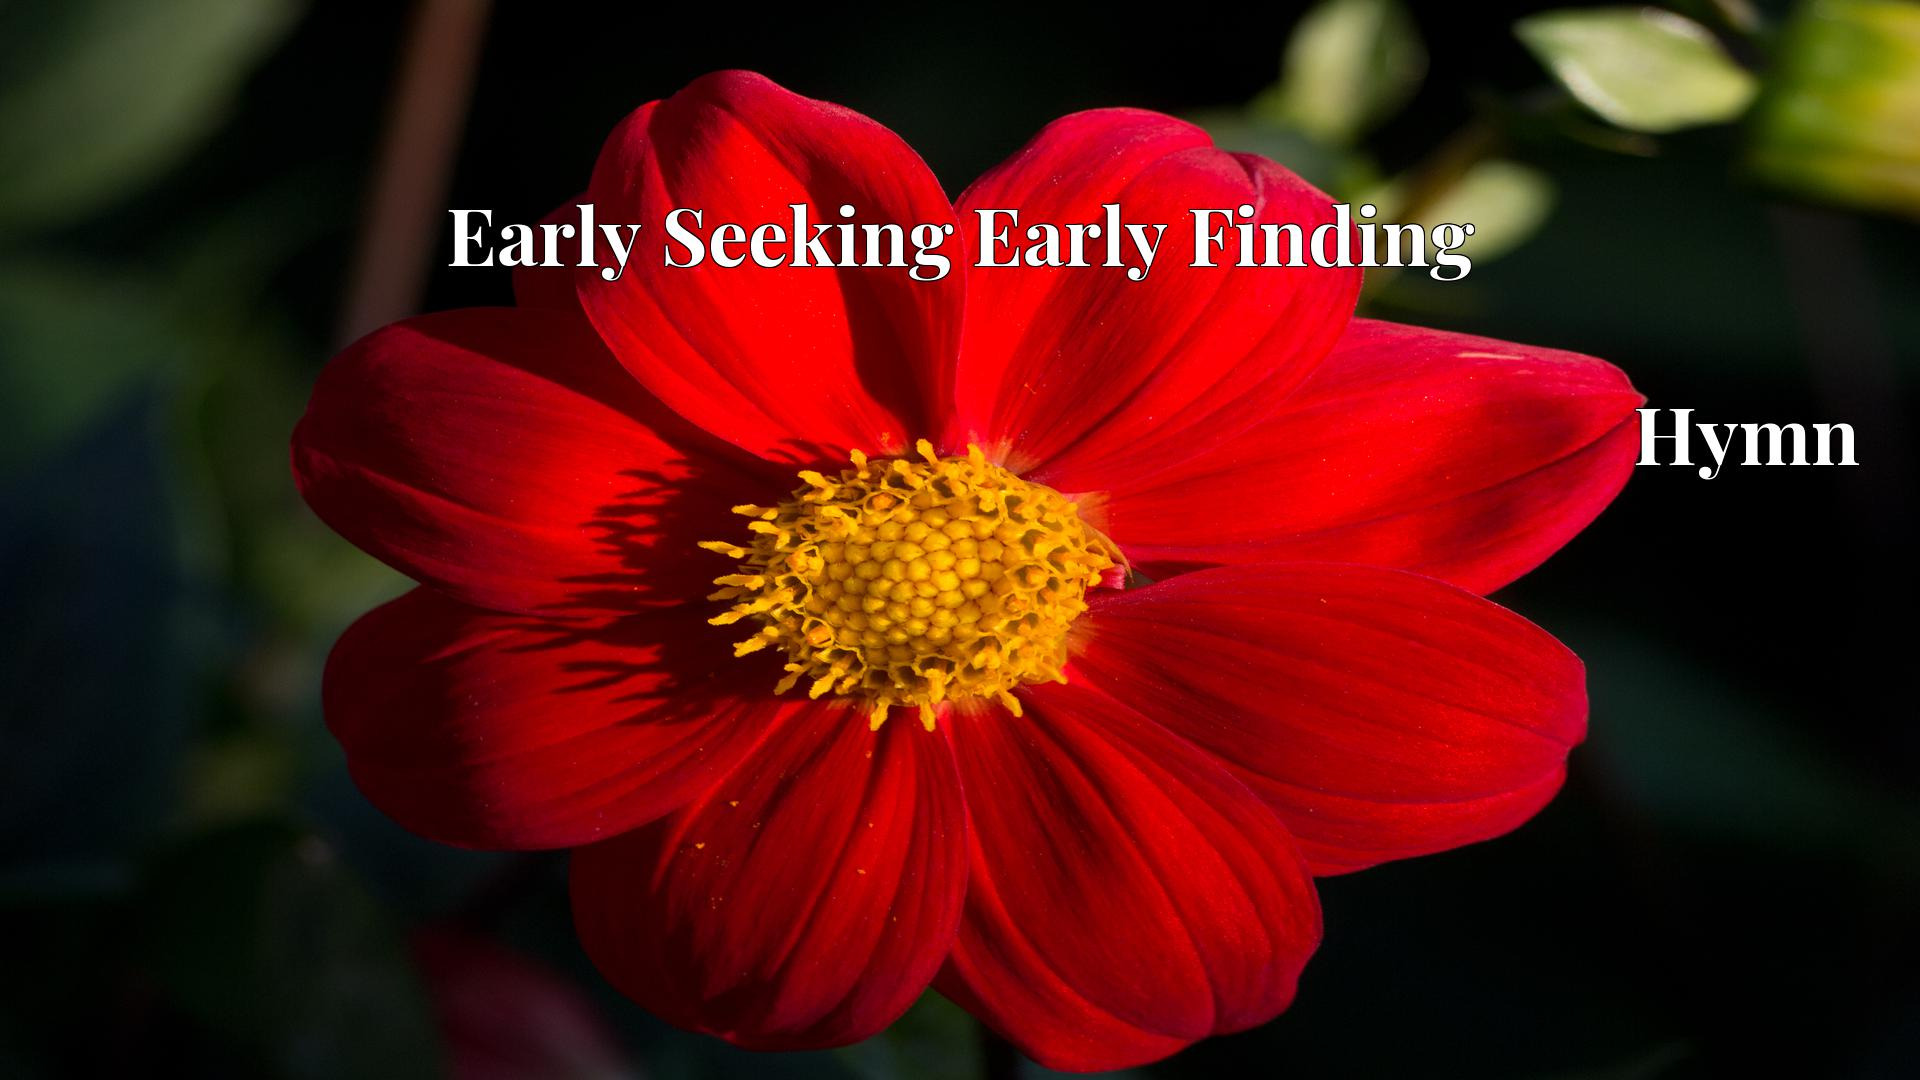 Early Seeking Early Finding - Hymn